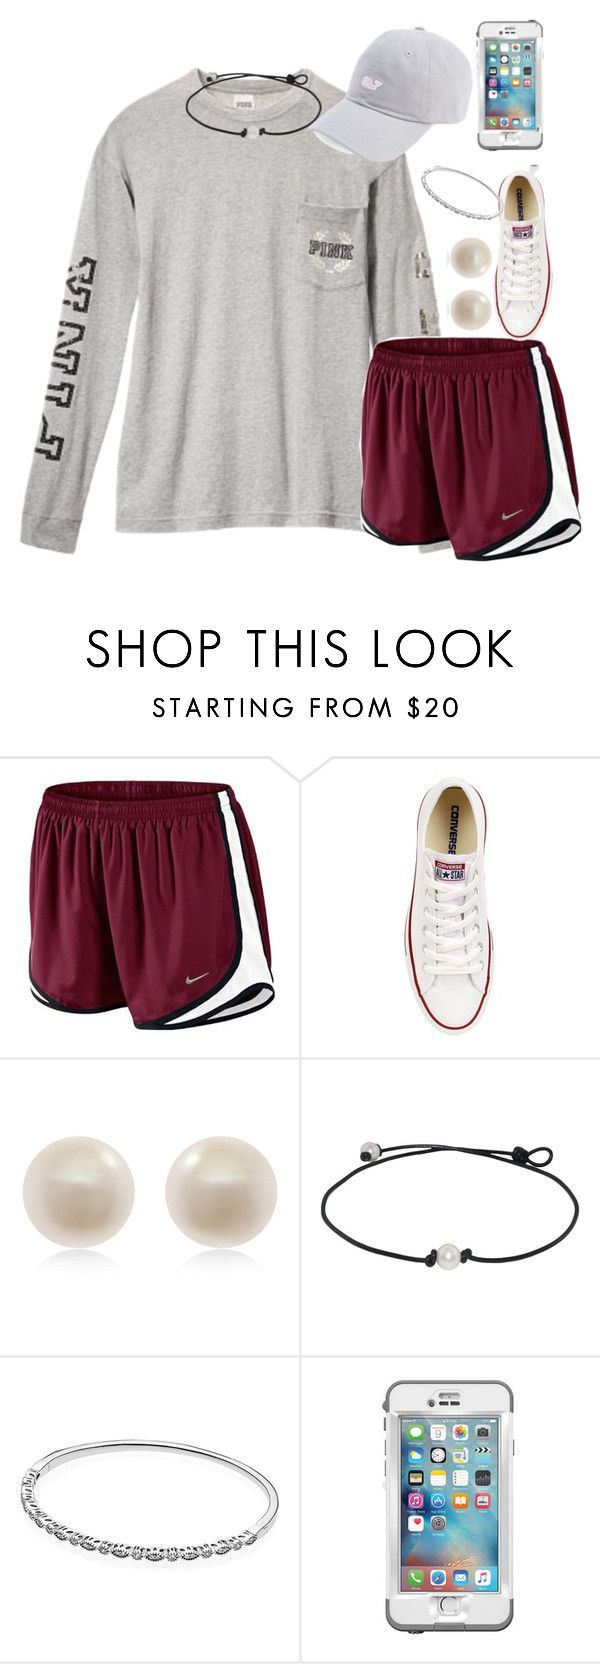 Leavin the island by carolinaprep137 ❤ liked on Polyvore featuring NIKE, Converse, Links of London, Pandora and LifePro